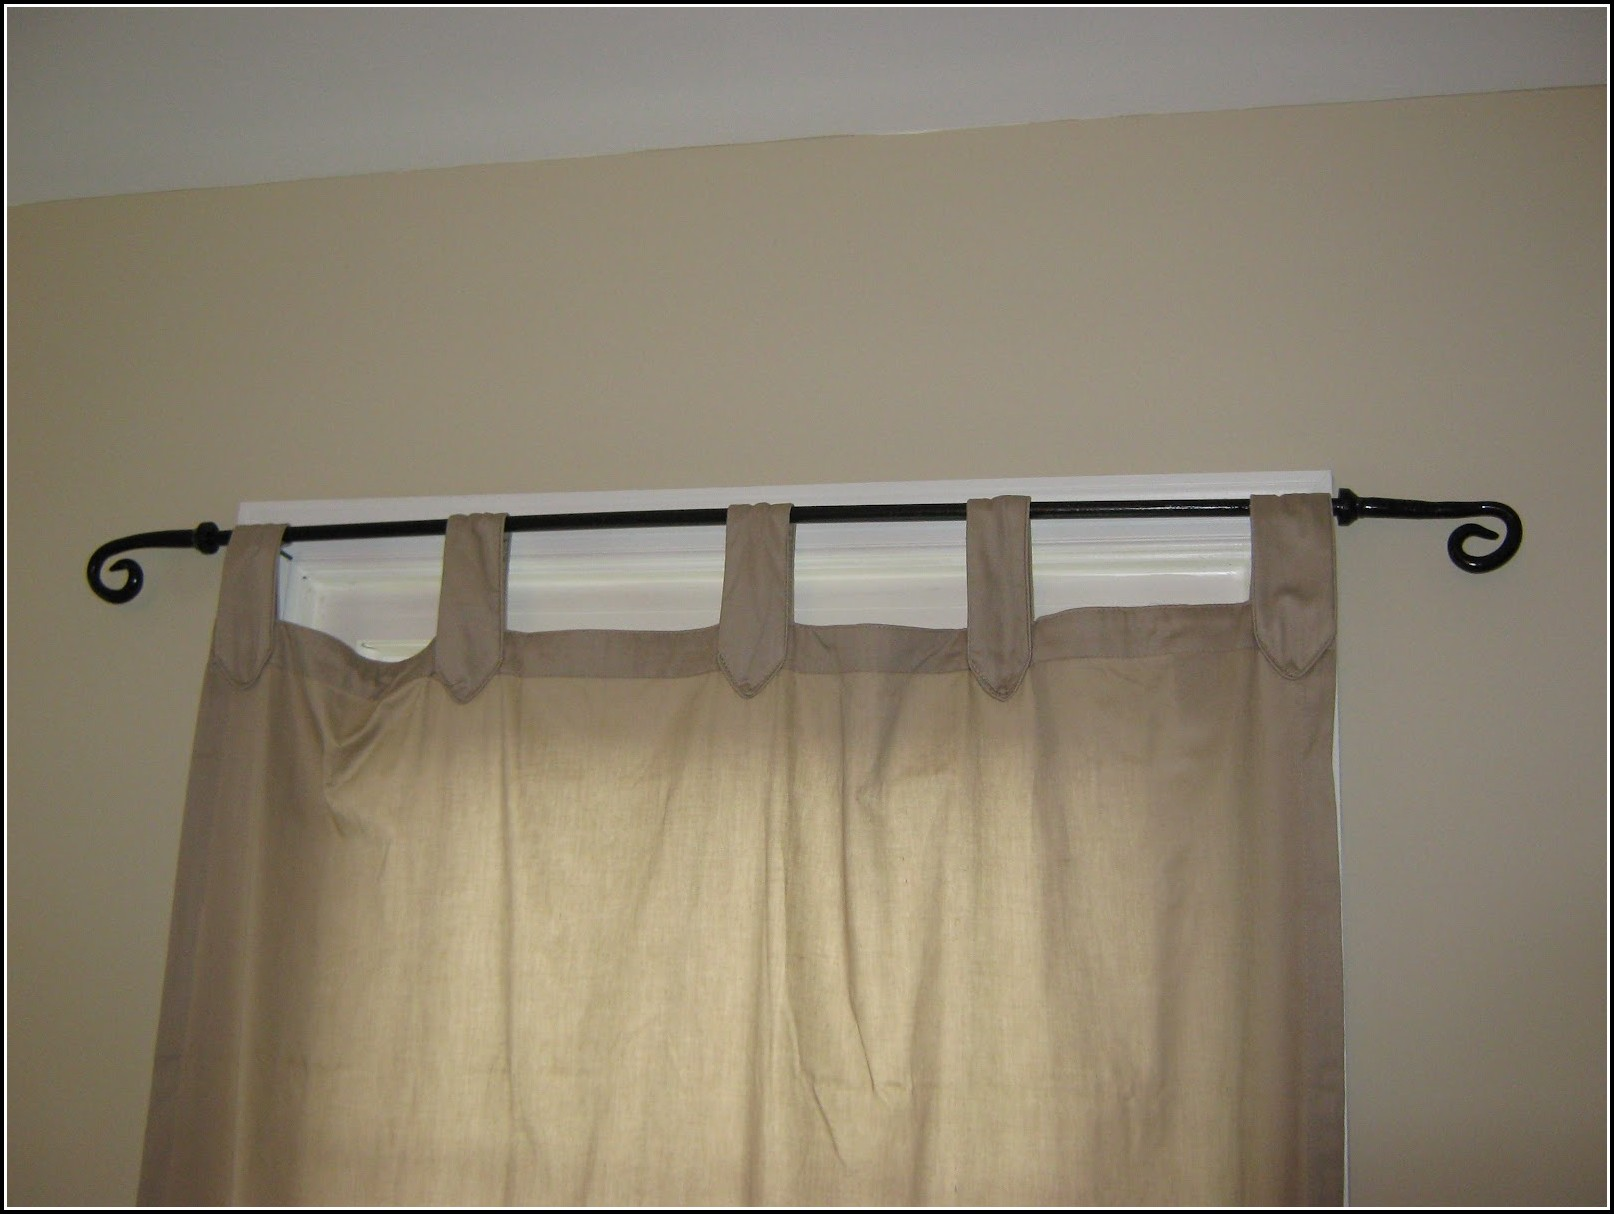 12 Foot Double Curtain Rods